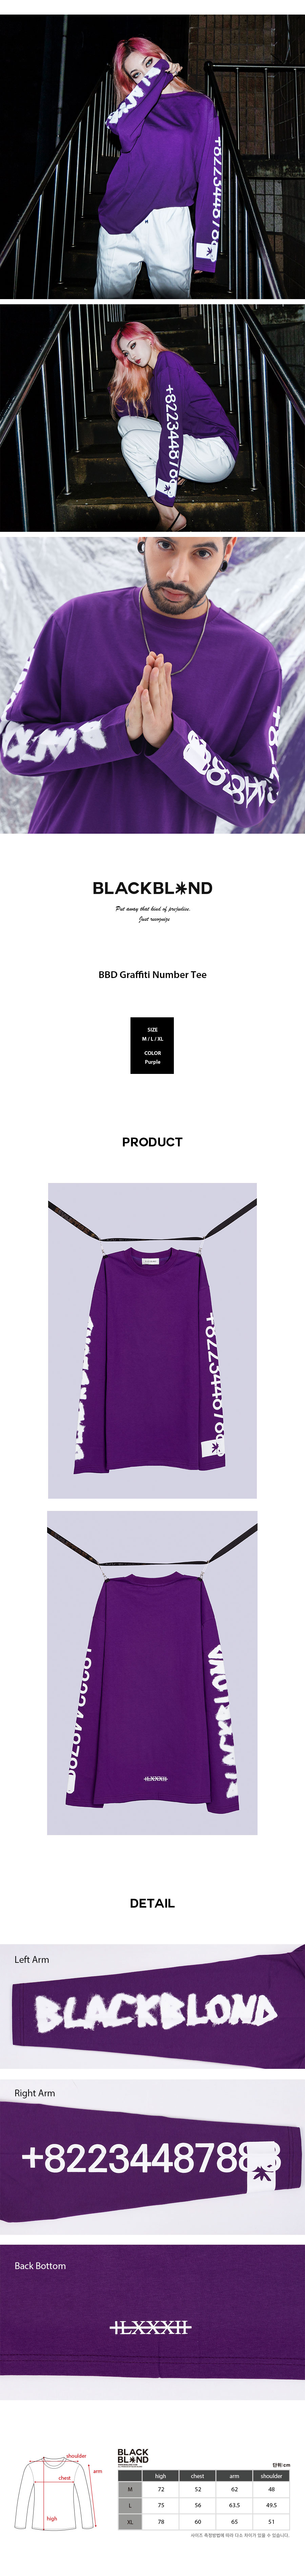 BBD-Graffiti-Number-Tee-%28Purple%29.jpg